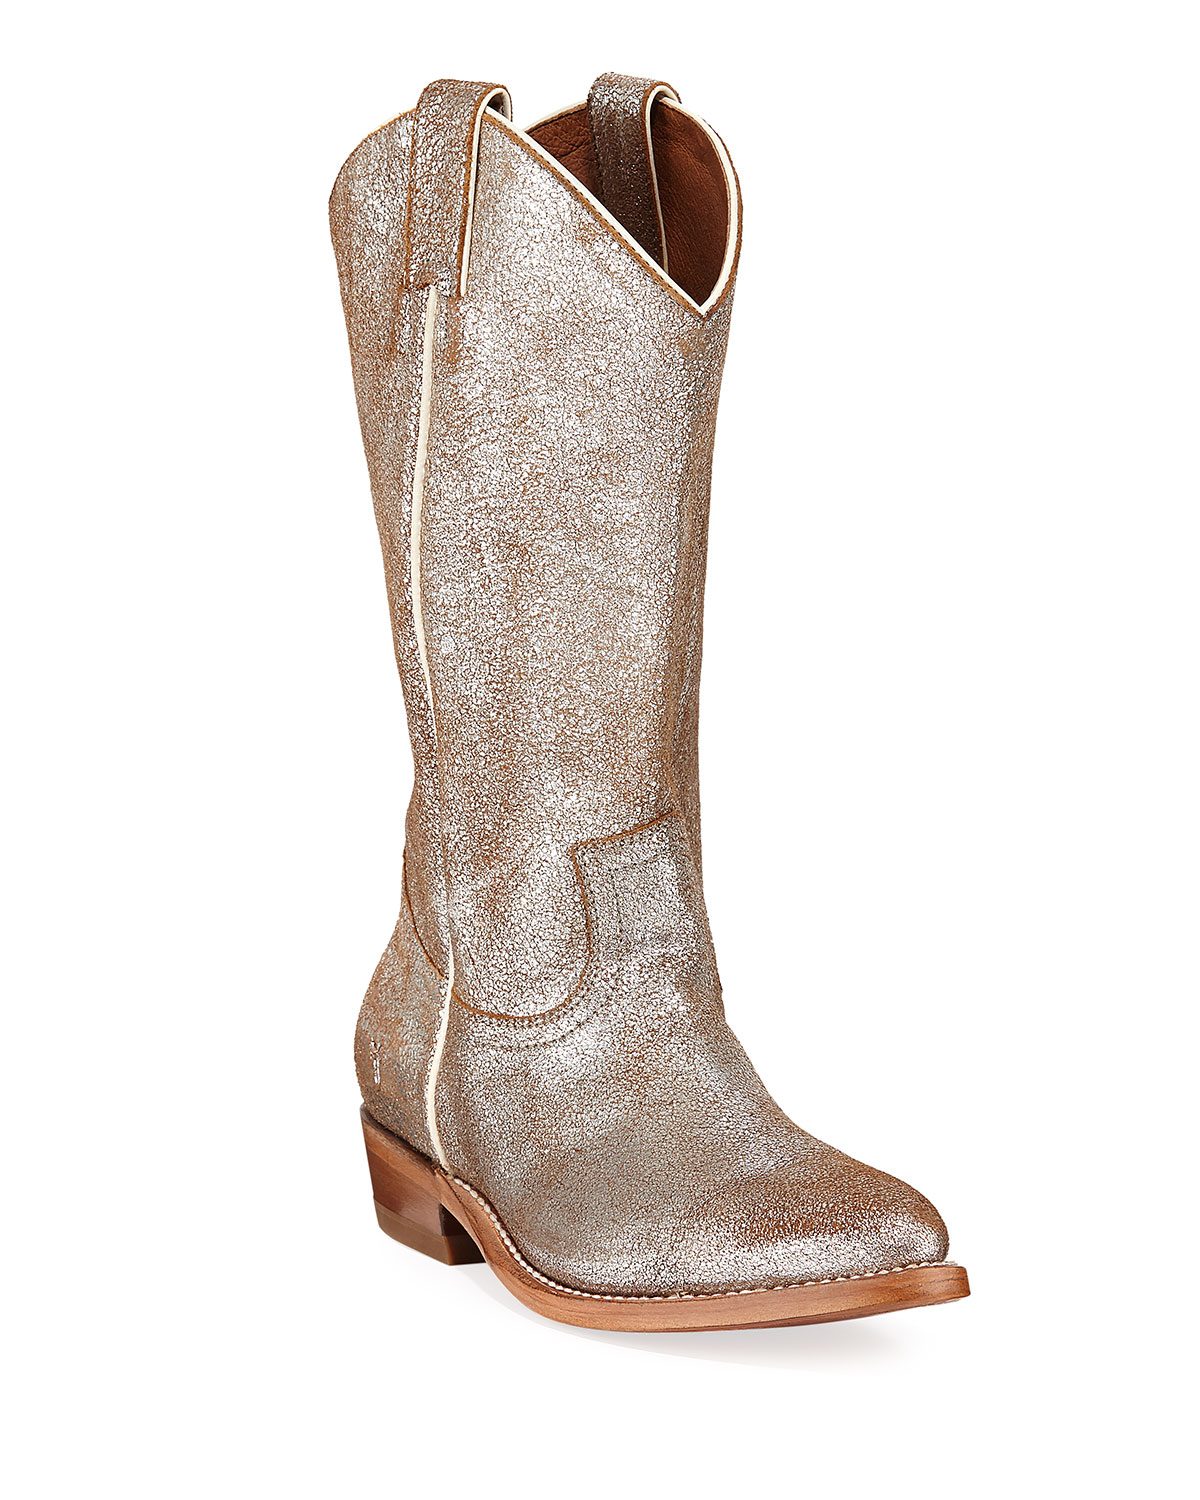 Billy Metallic Western Boots